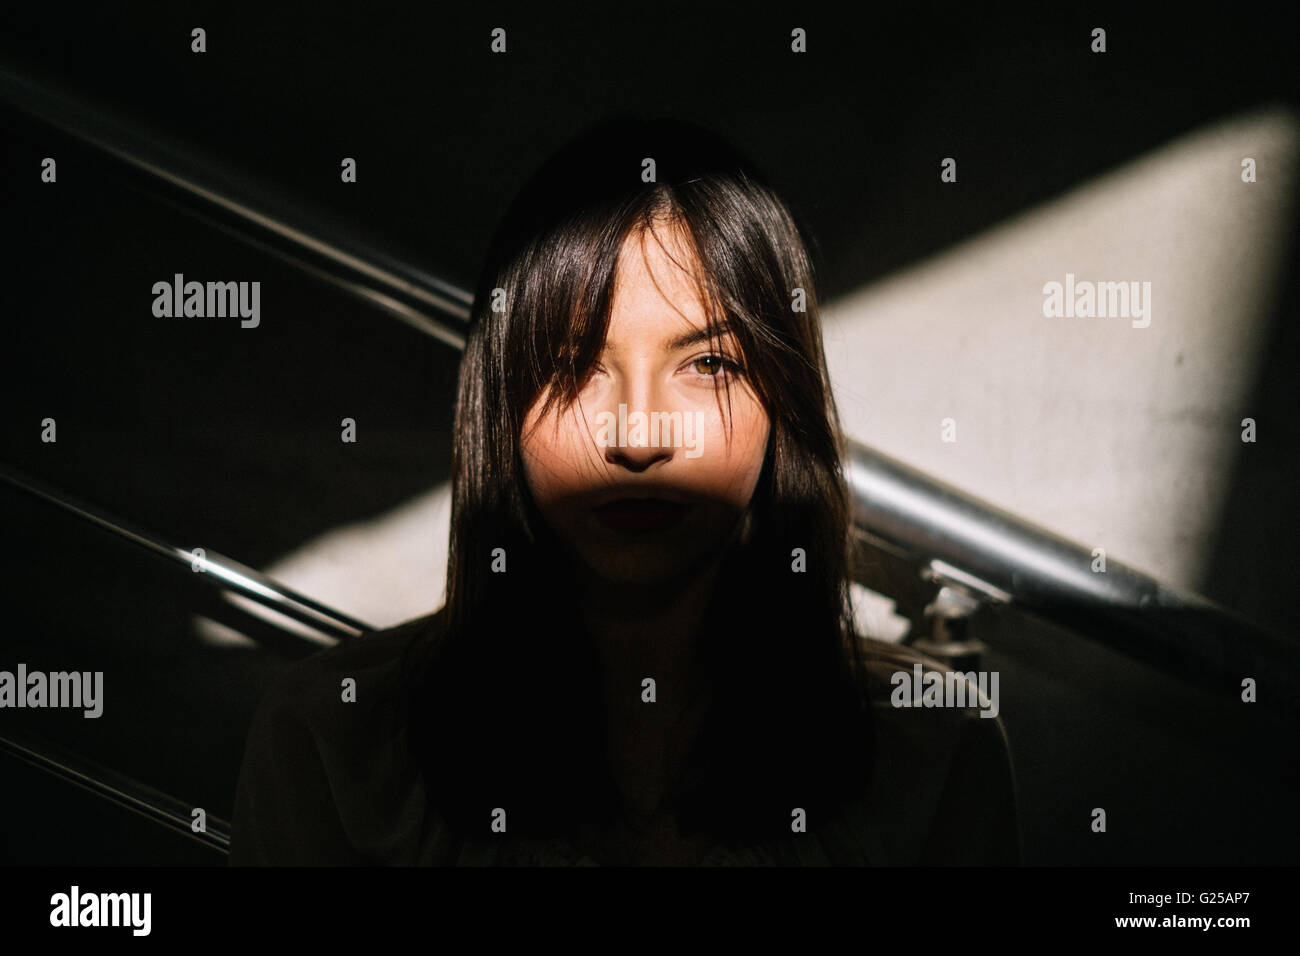 Portrait of a woman's face in shadow - Stock Image